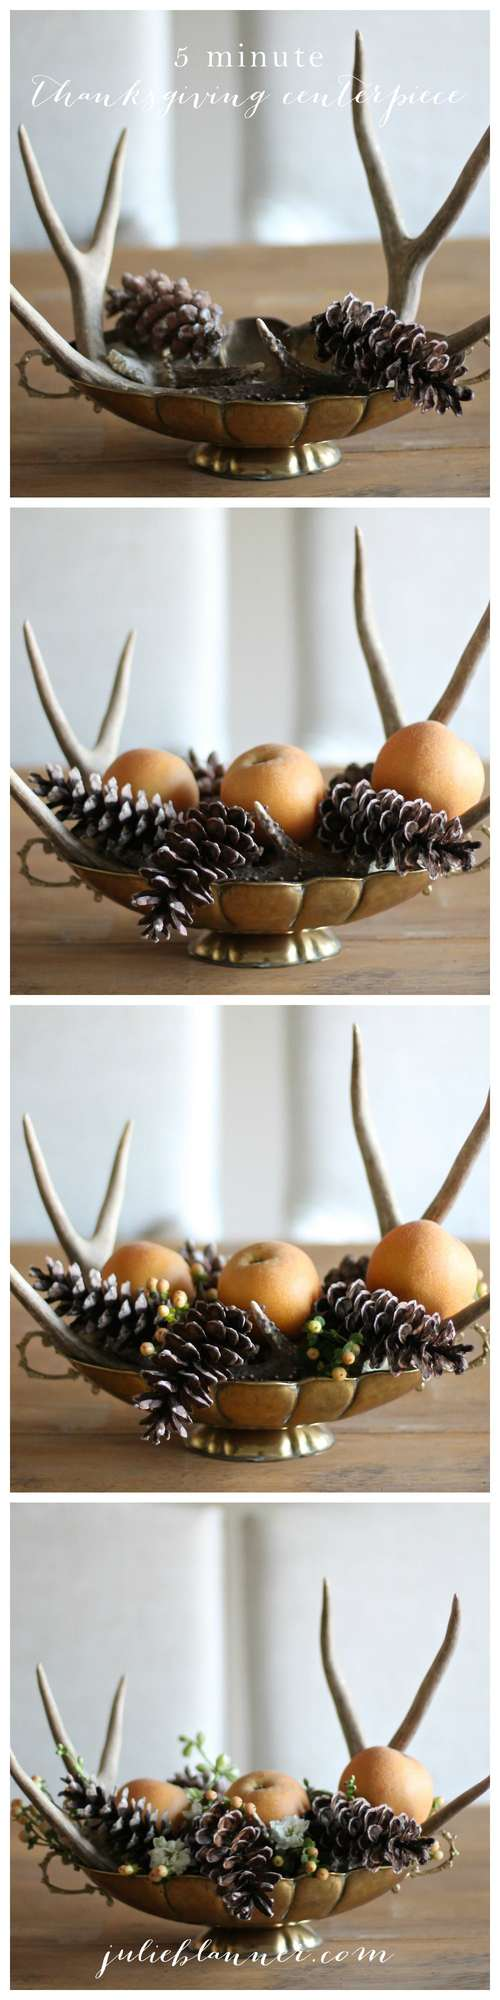 5 Minute Thanksgiving Centerpiece Tutorial